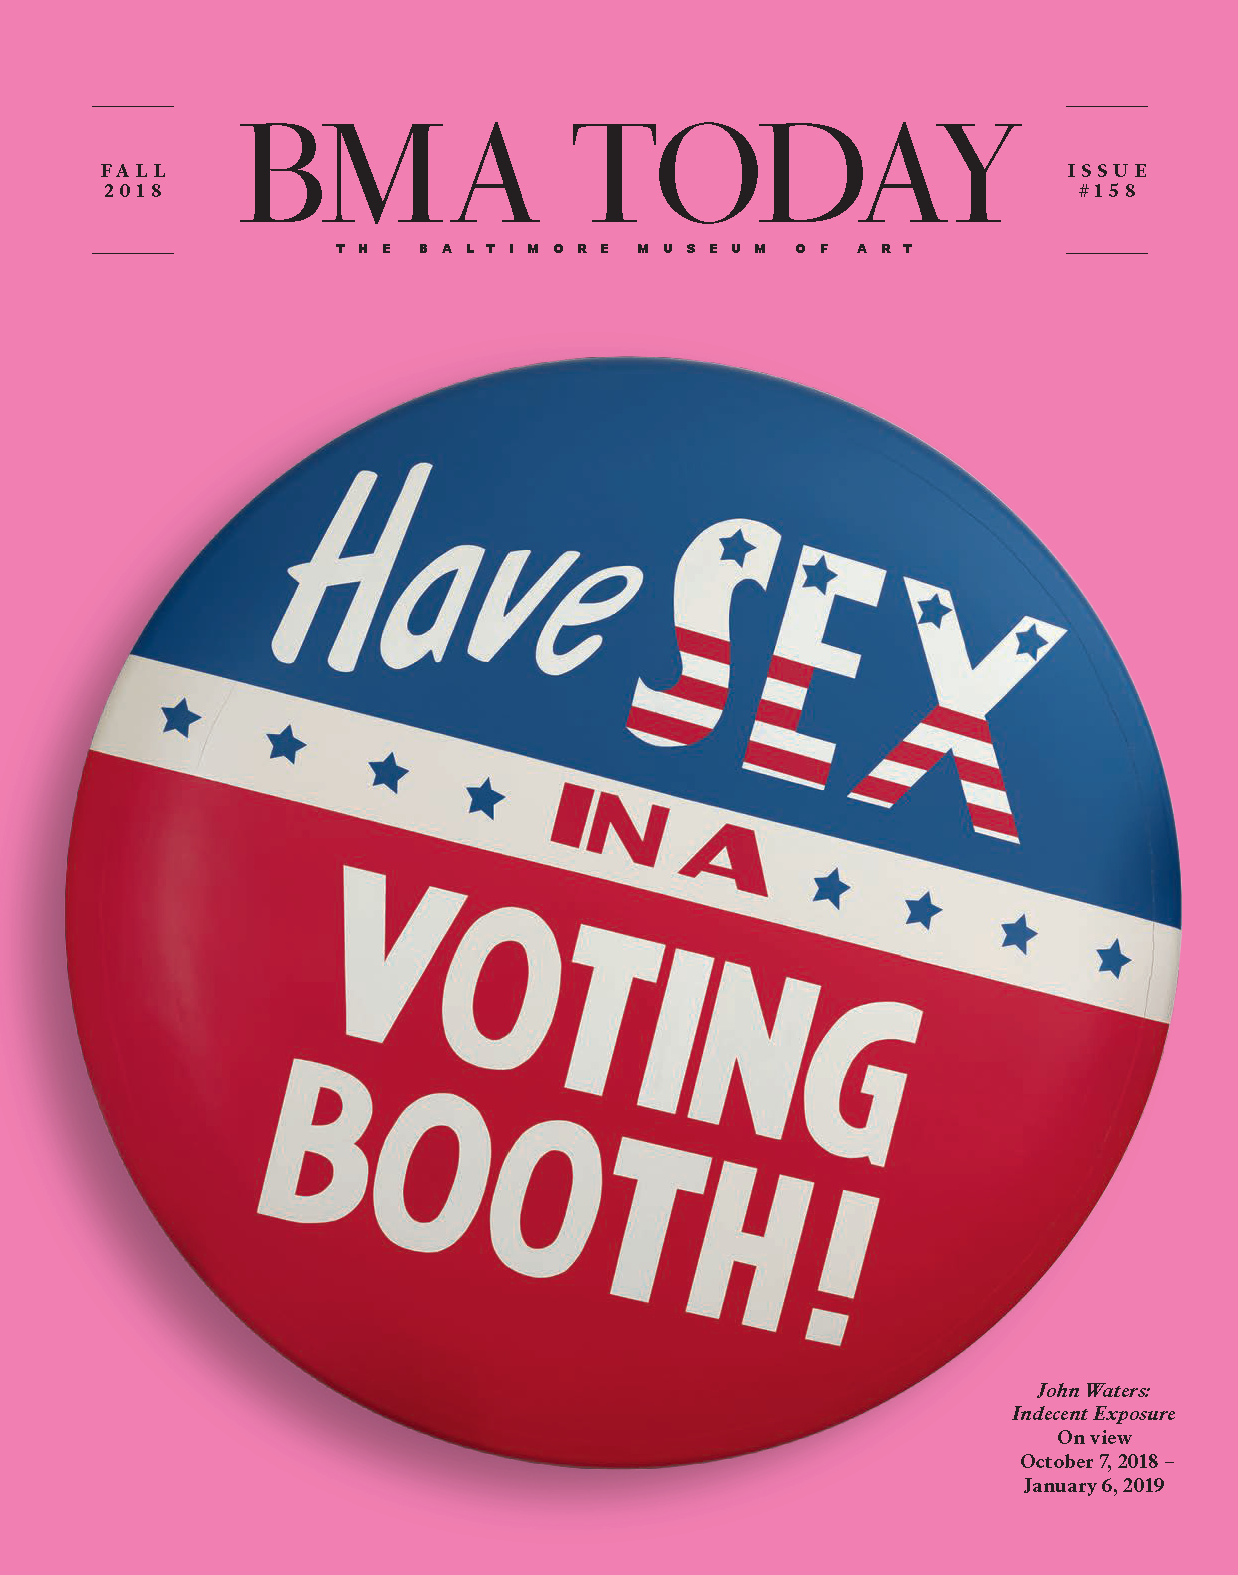 The cover of BMA Today.